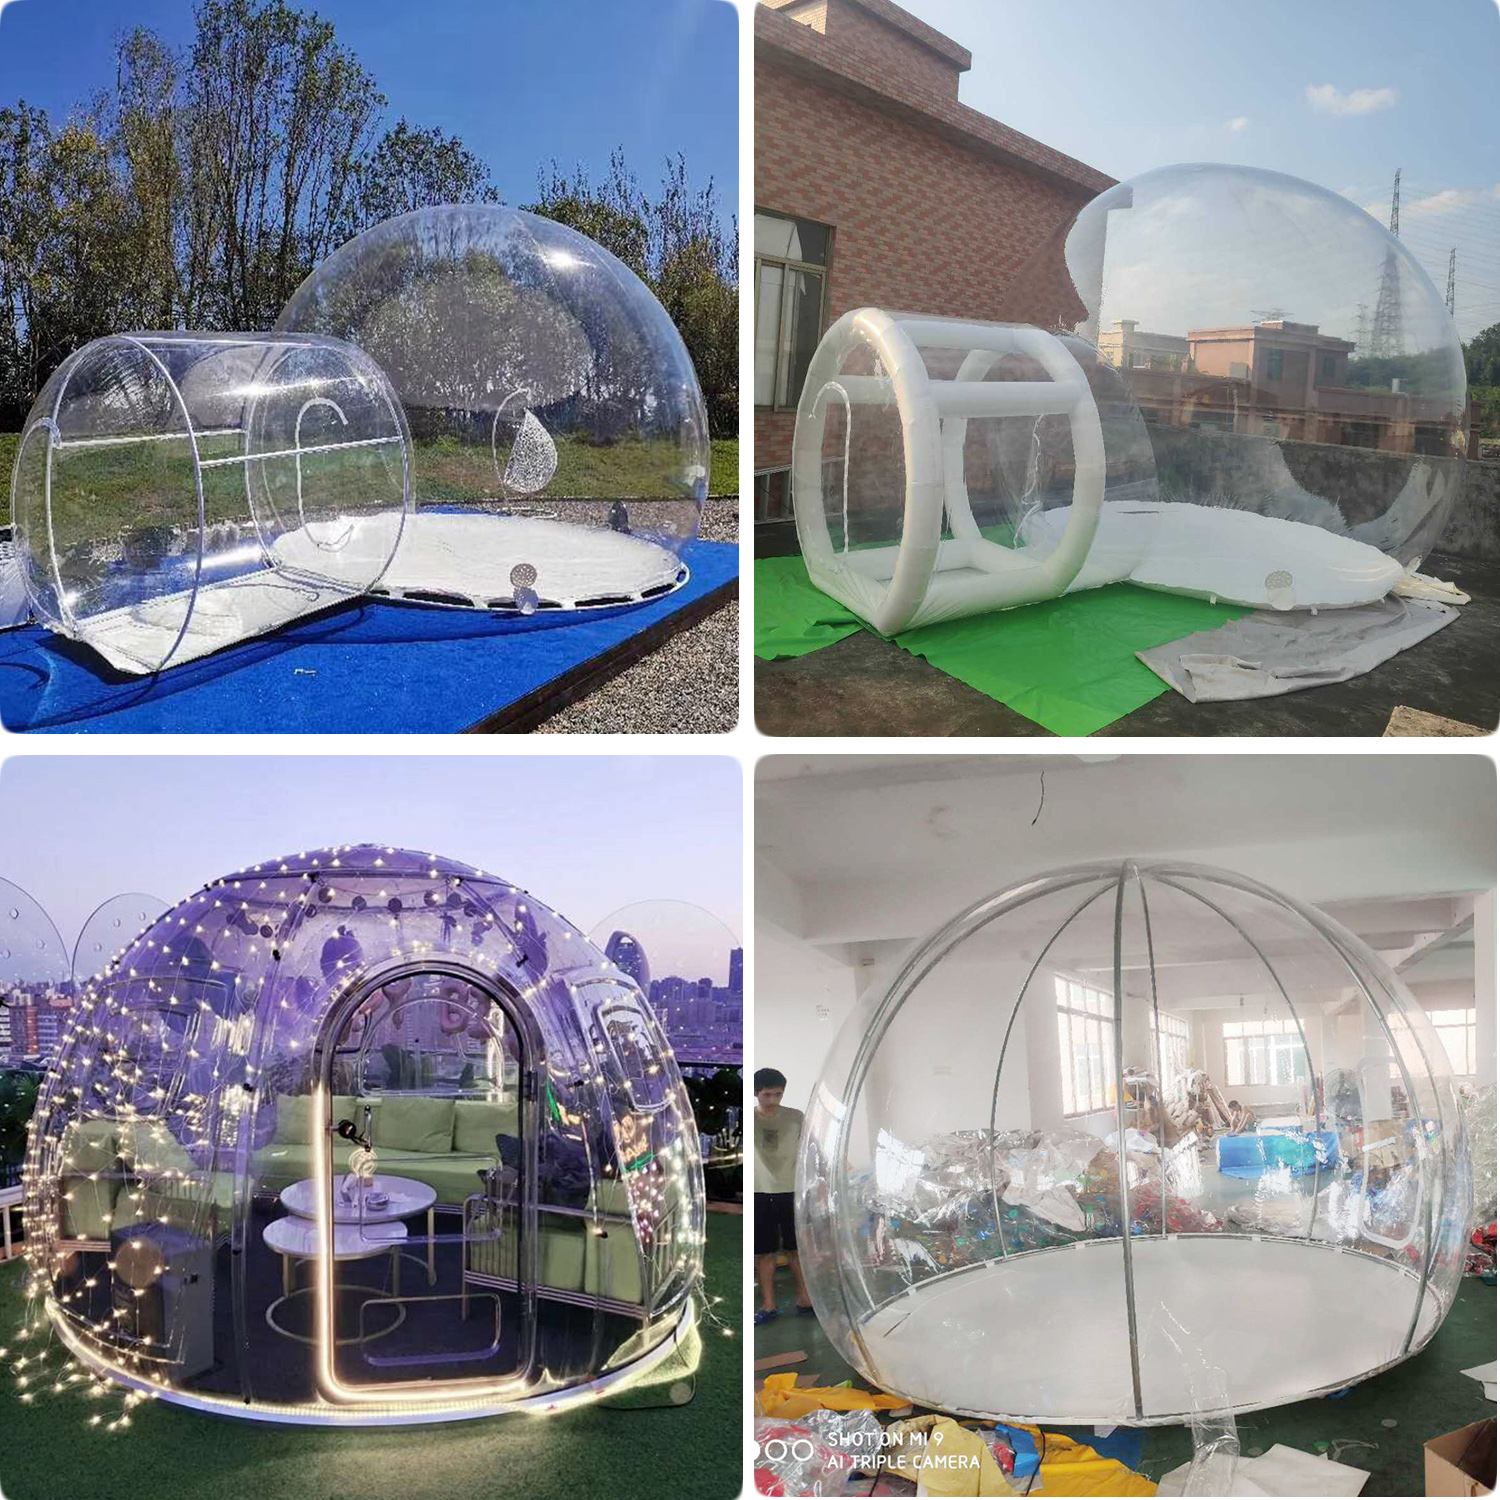 Outdoor igloo dome bubble tent / Inflatable Transparent Bubble Tent House/ Inflatable Hotel Bubble Lodge Tent for sale